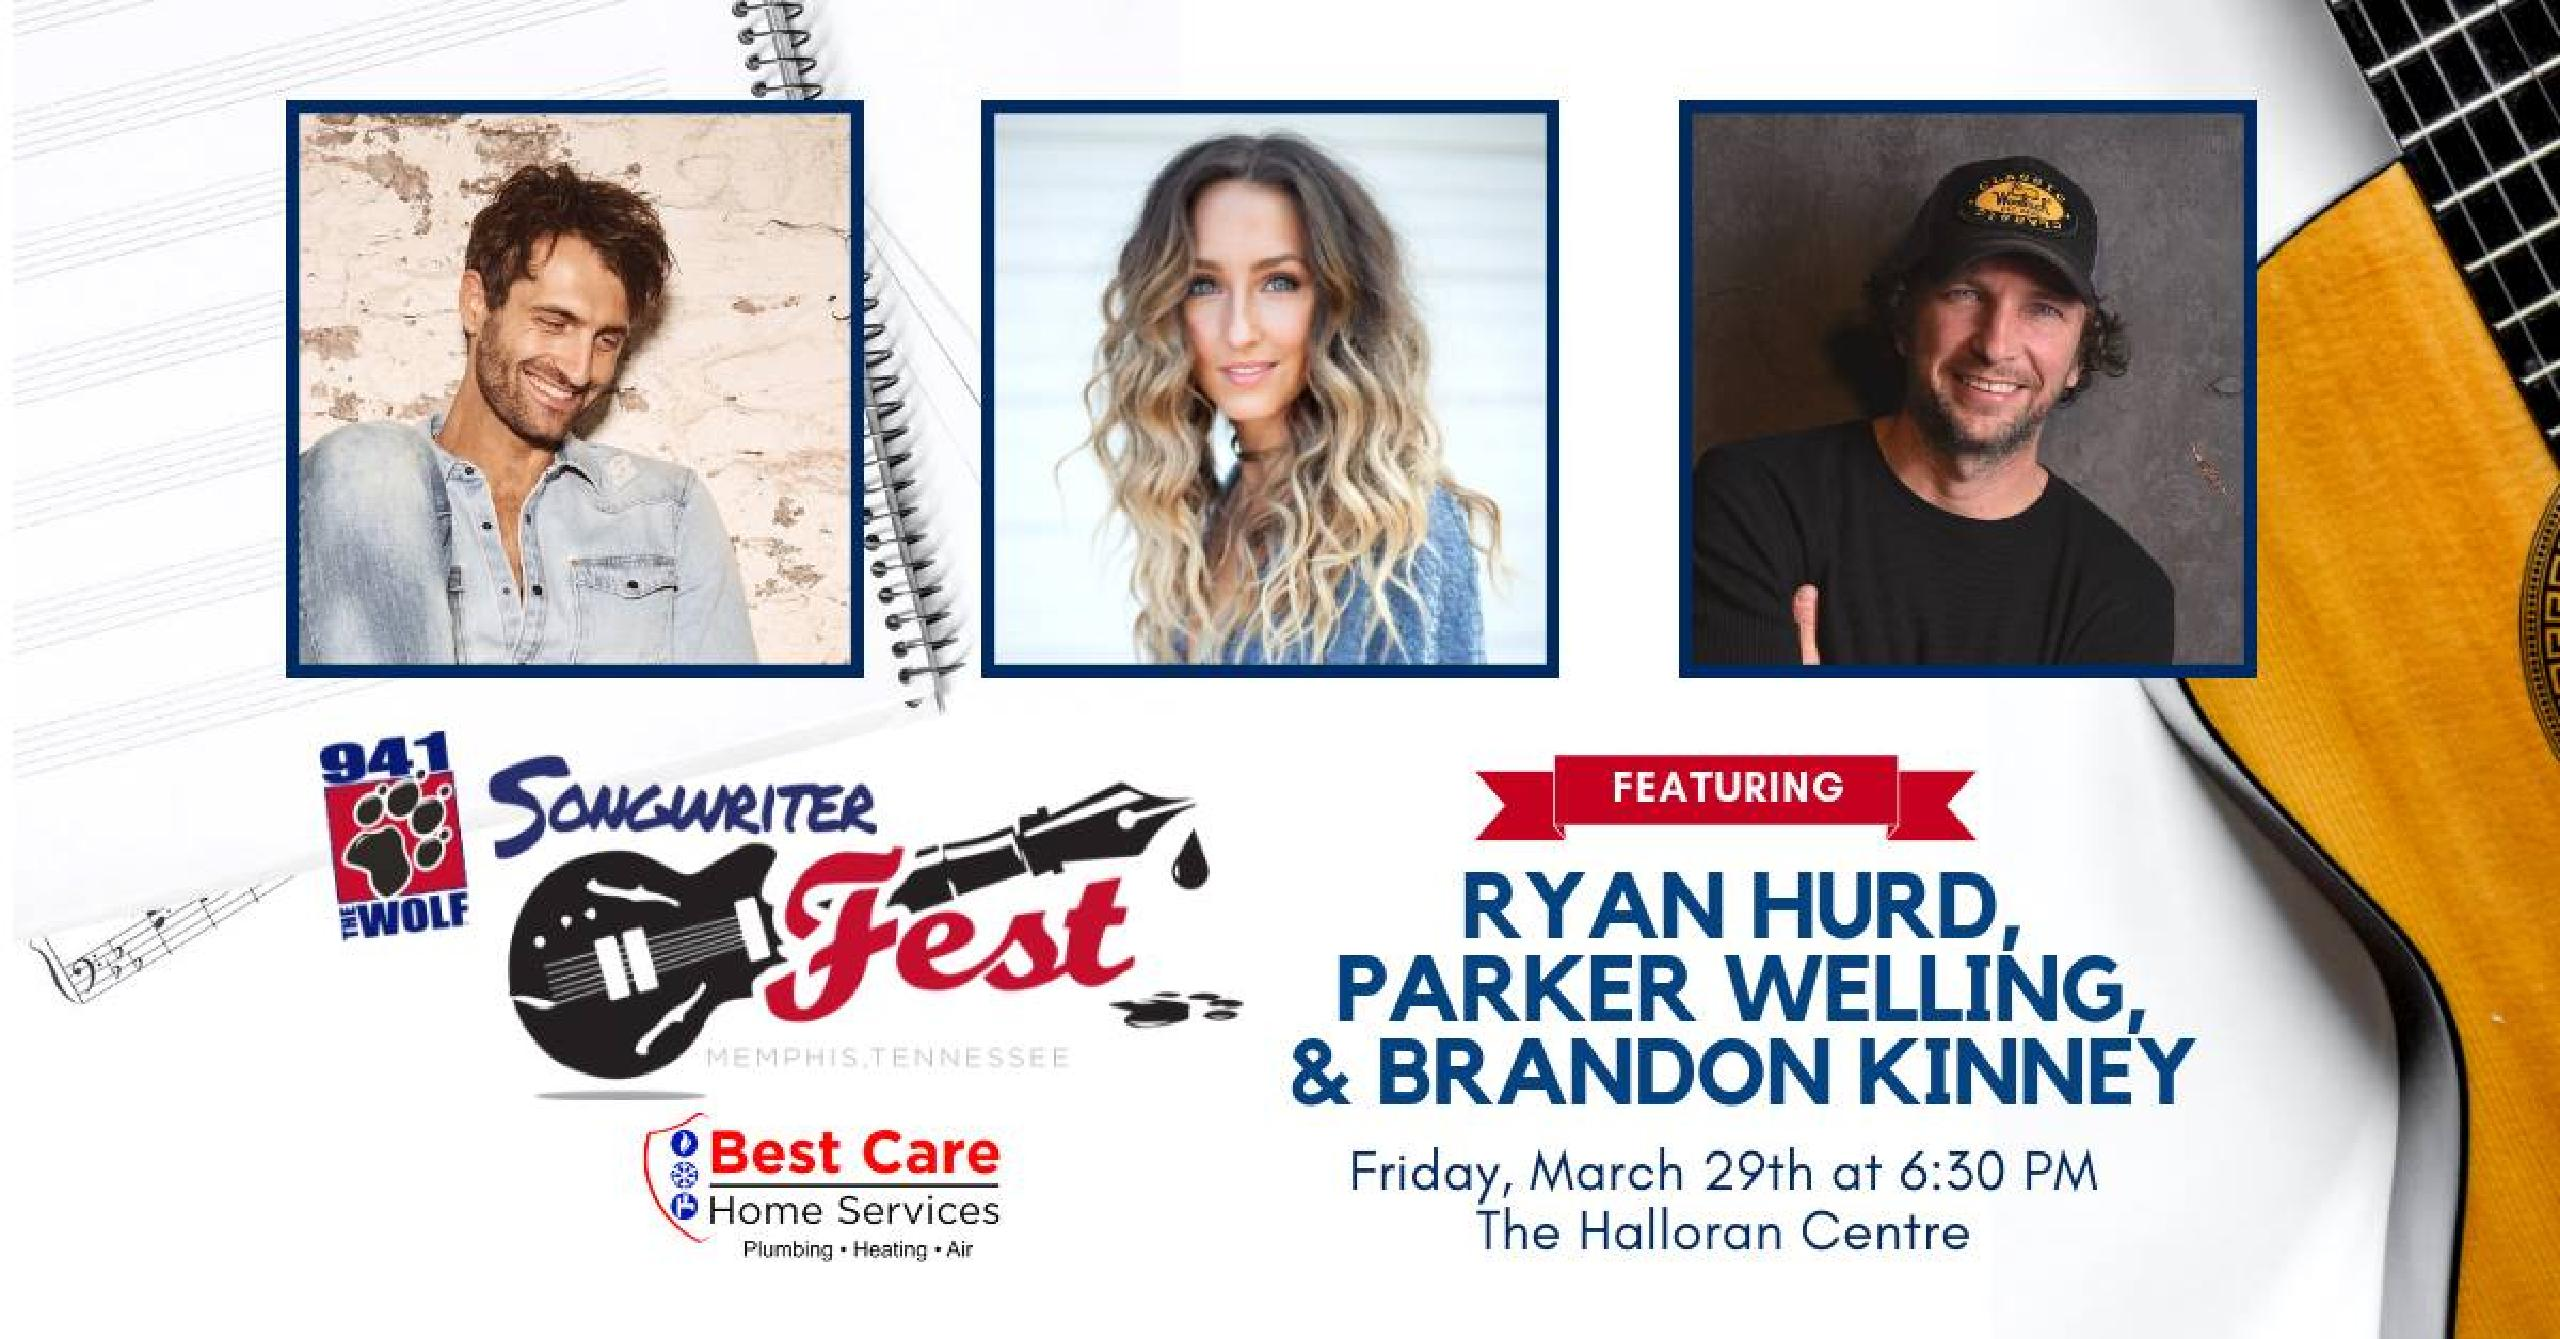 94.1 Songwriter Fest Lineup